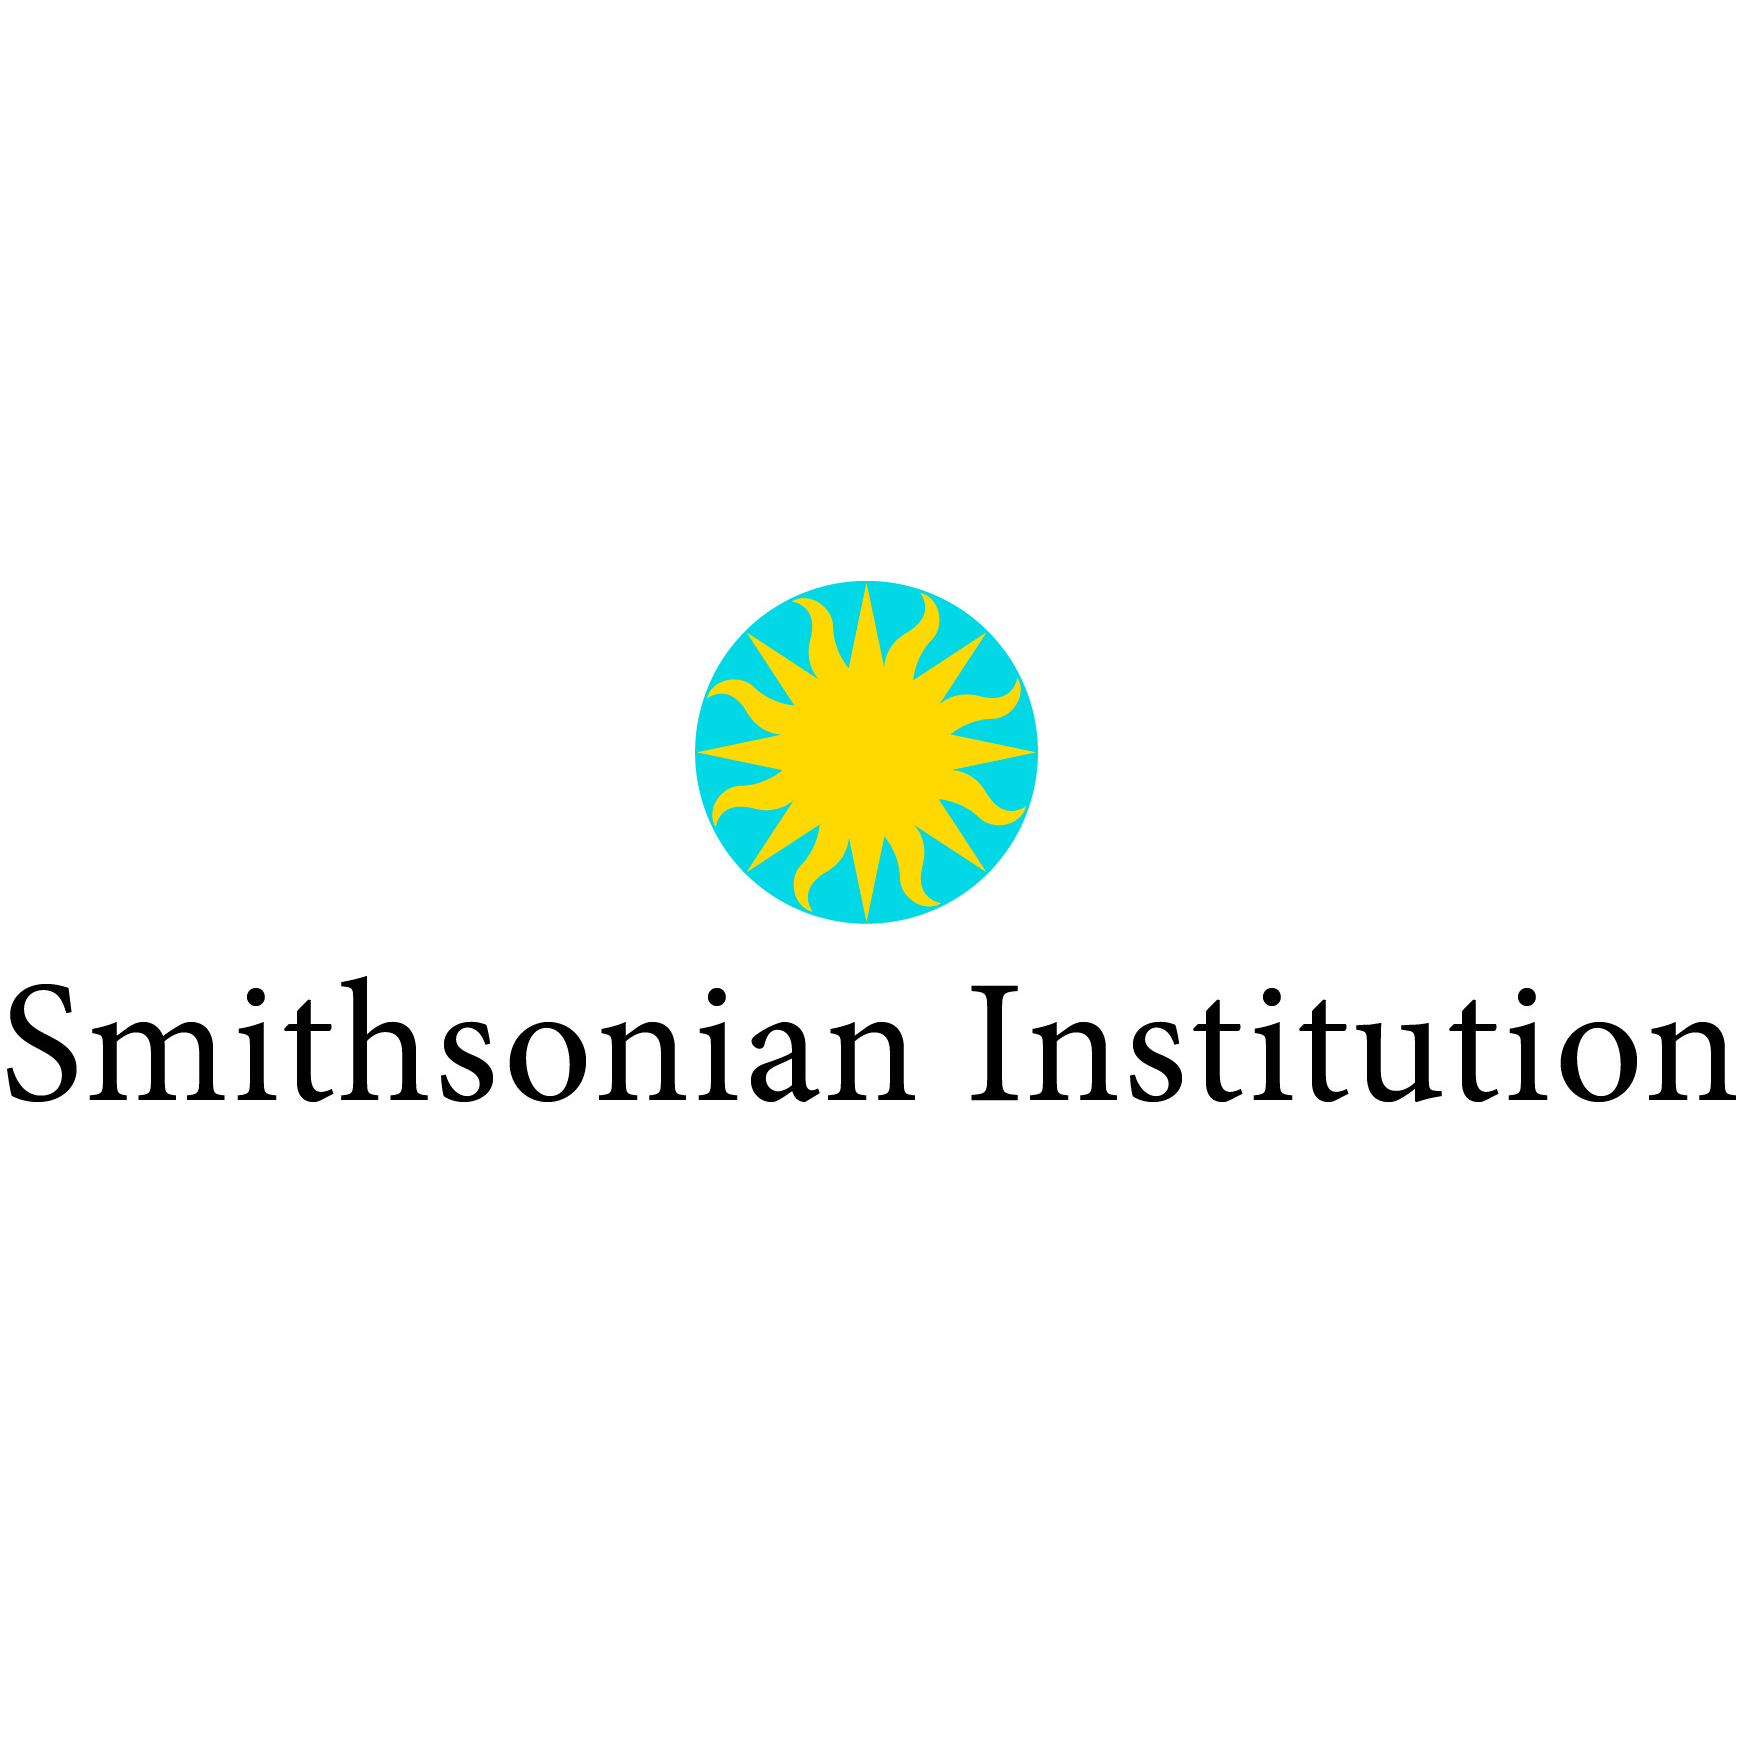 Smithsonian Institution.jpg